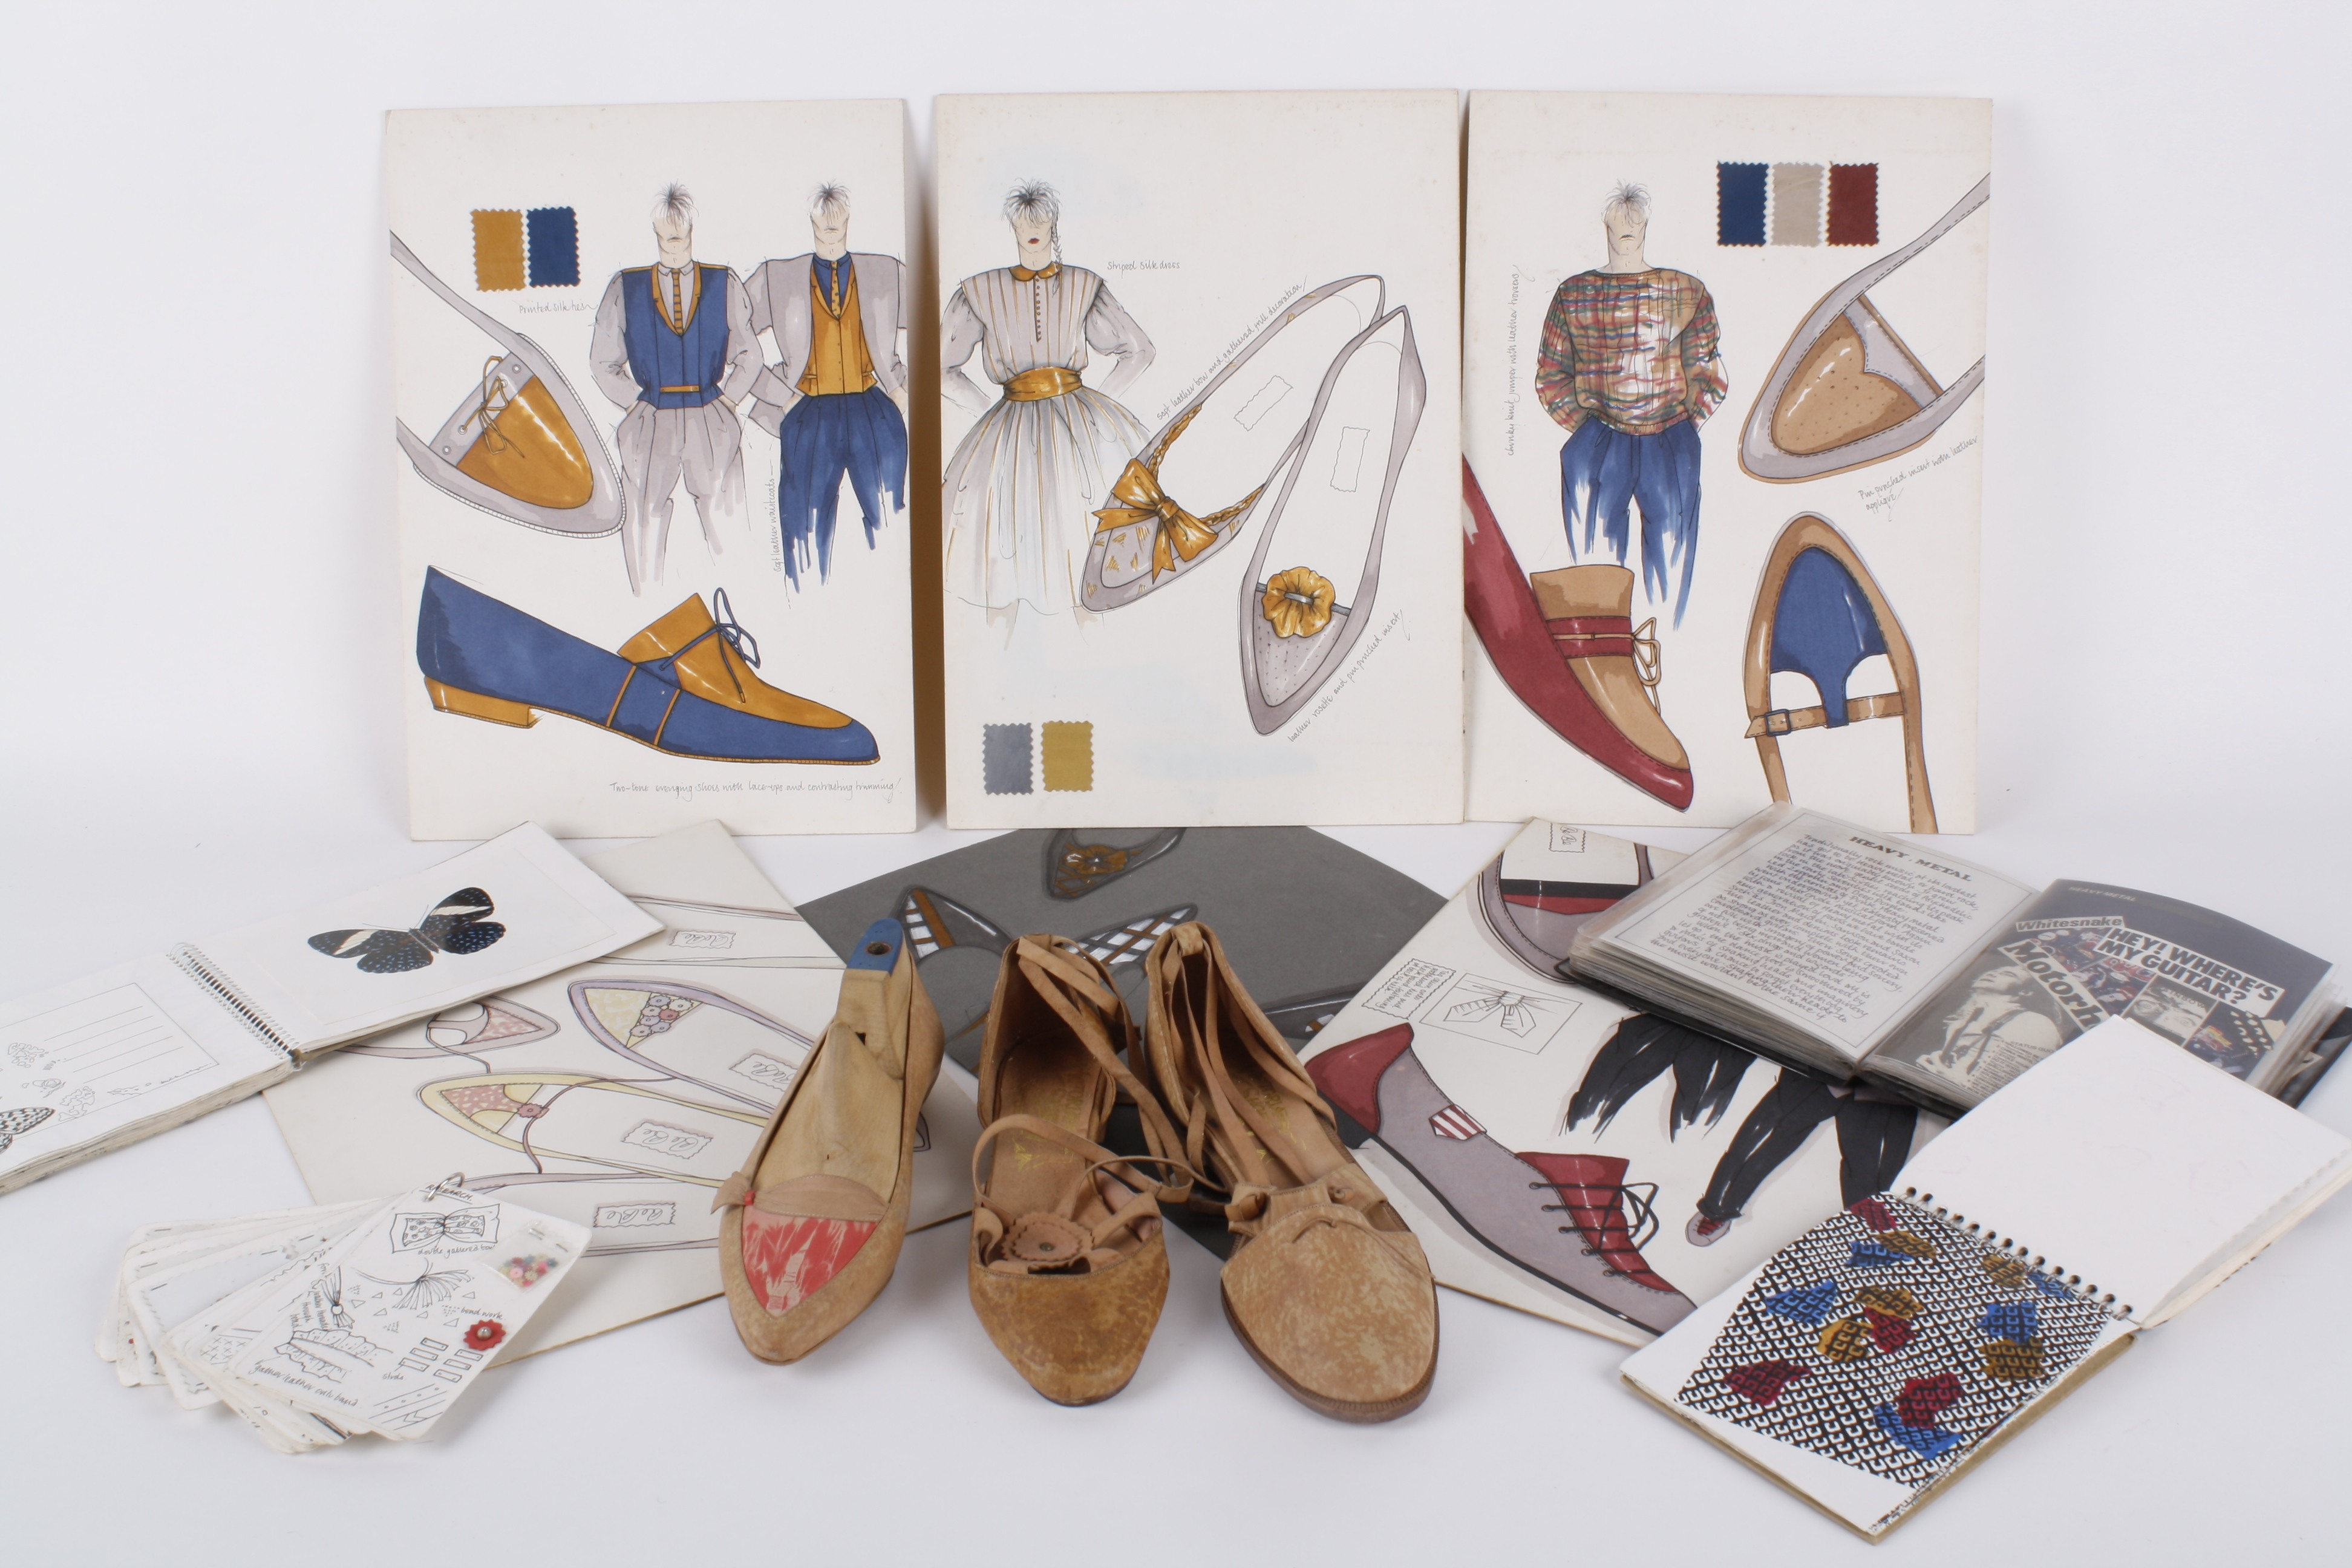 A Collection Of 1980s Fashion Design Sketches Comprising Drawings And Presentation Boards For S